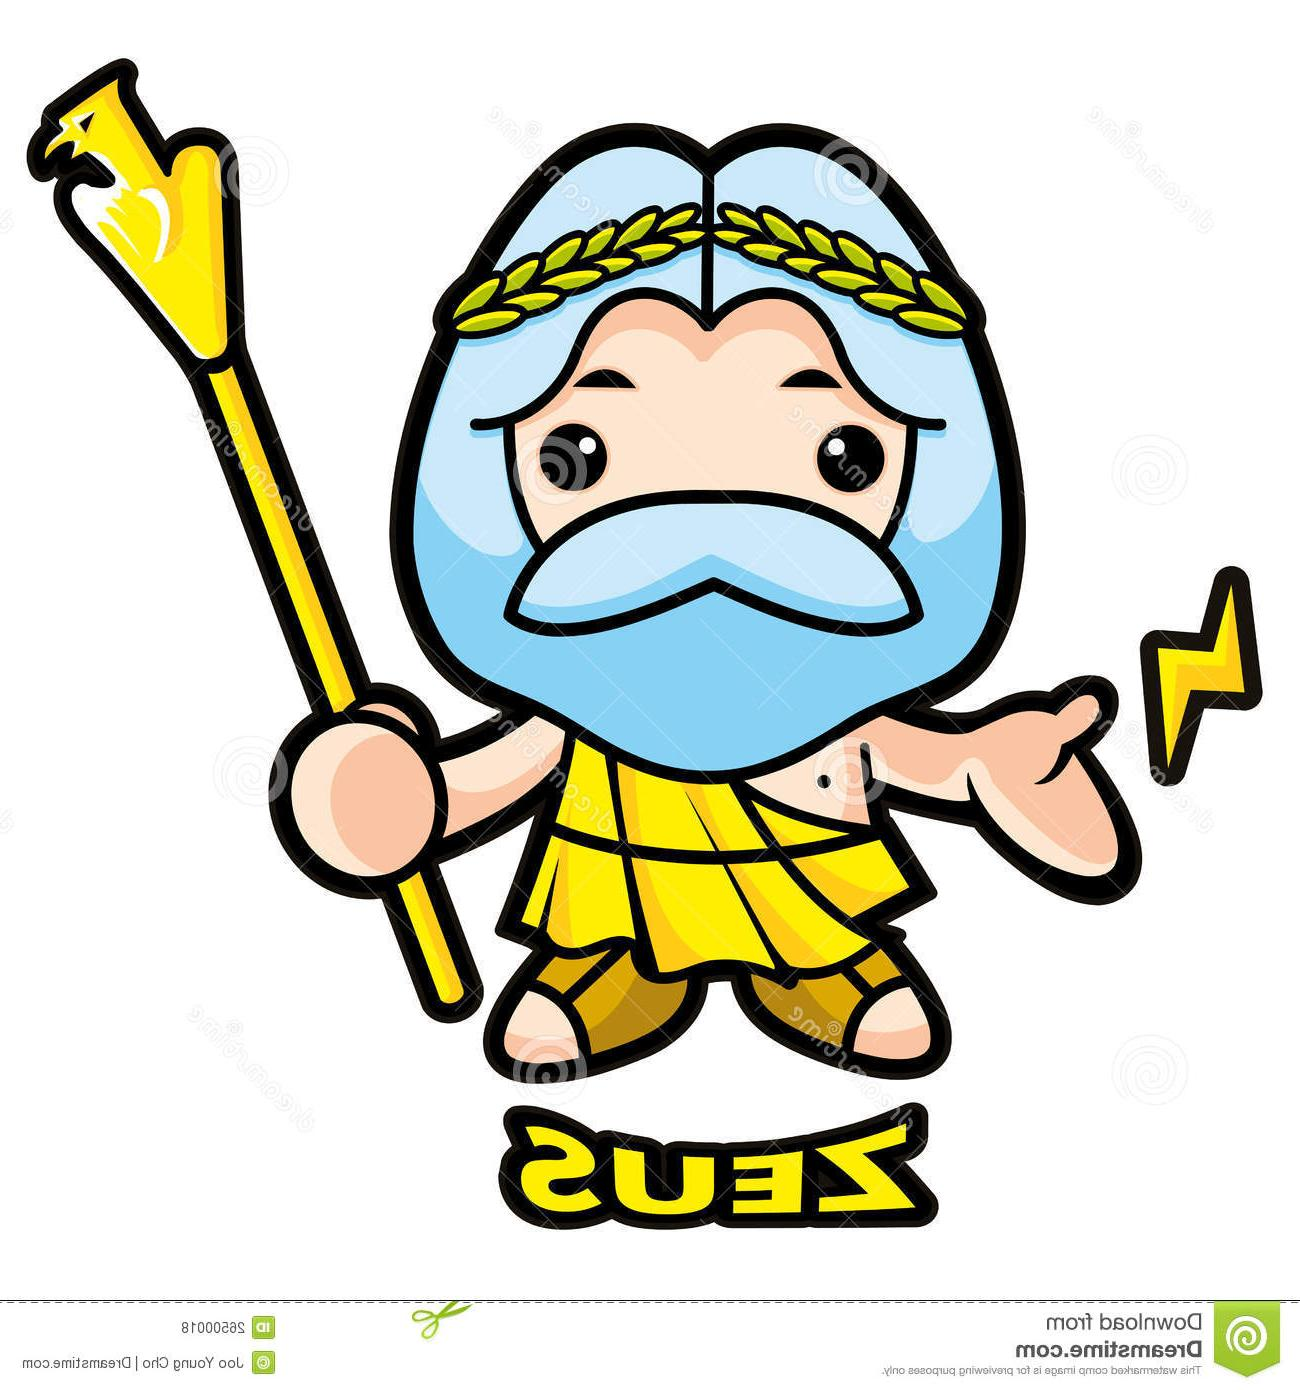 graphic free download Free download best on. Zeus clipart cartoon.